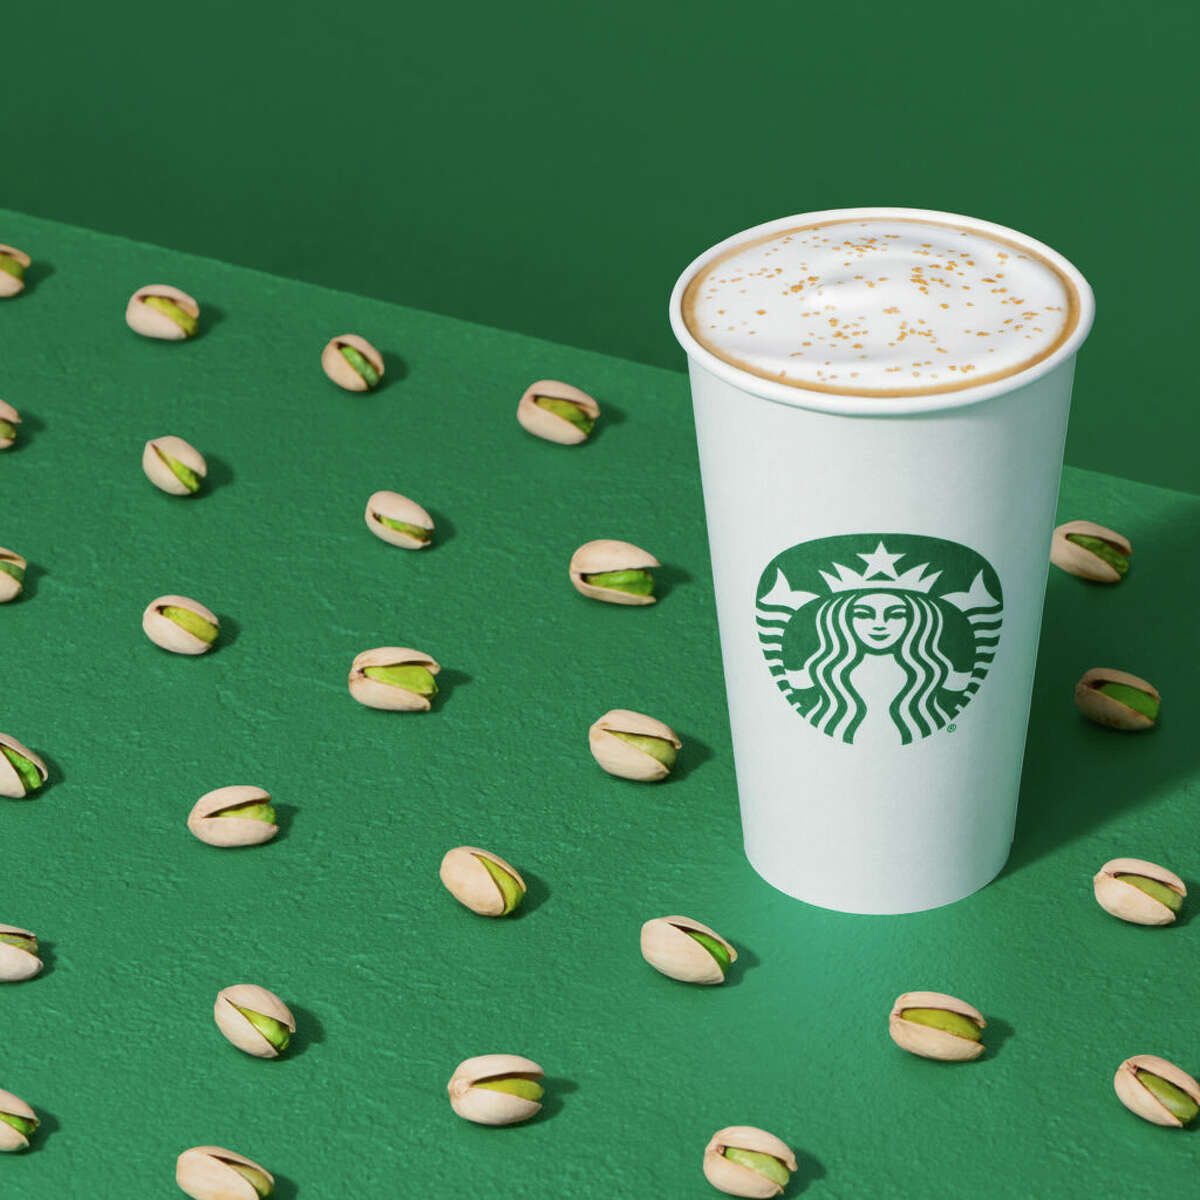 Pistachio Latte from Starbucks. Pistachio Latte This new sweet espresso drink is made with pistachio-infused milk and